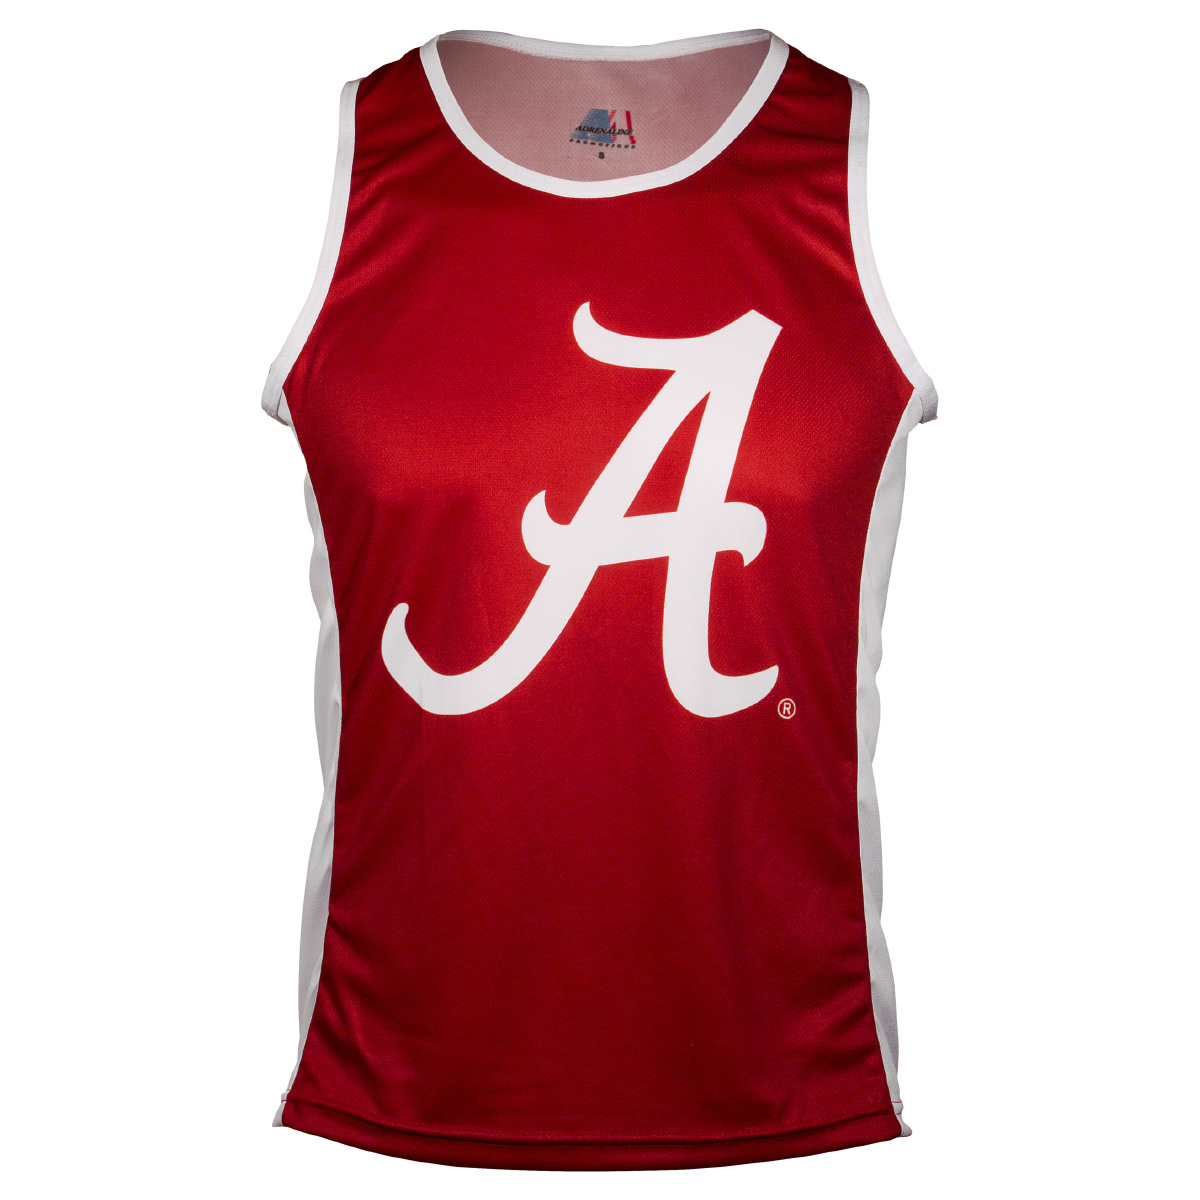 Adrenaline Promotions University of Alabama Crimson Tide Run/Tri Singlet